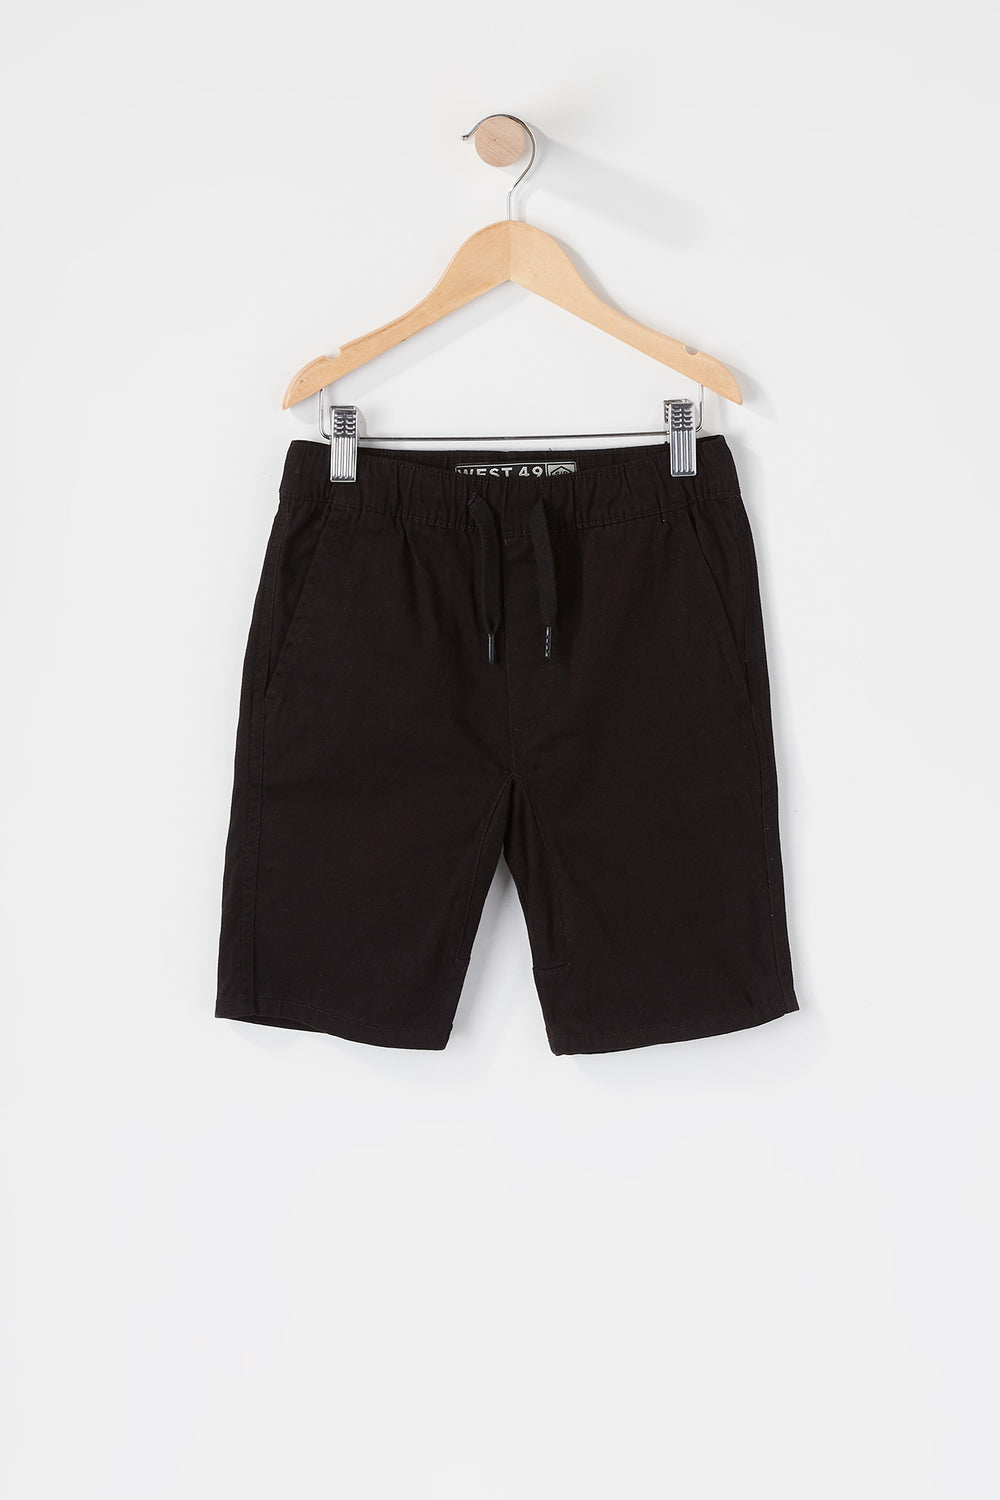 West49 Boys Jogger Short Black